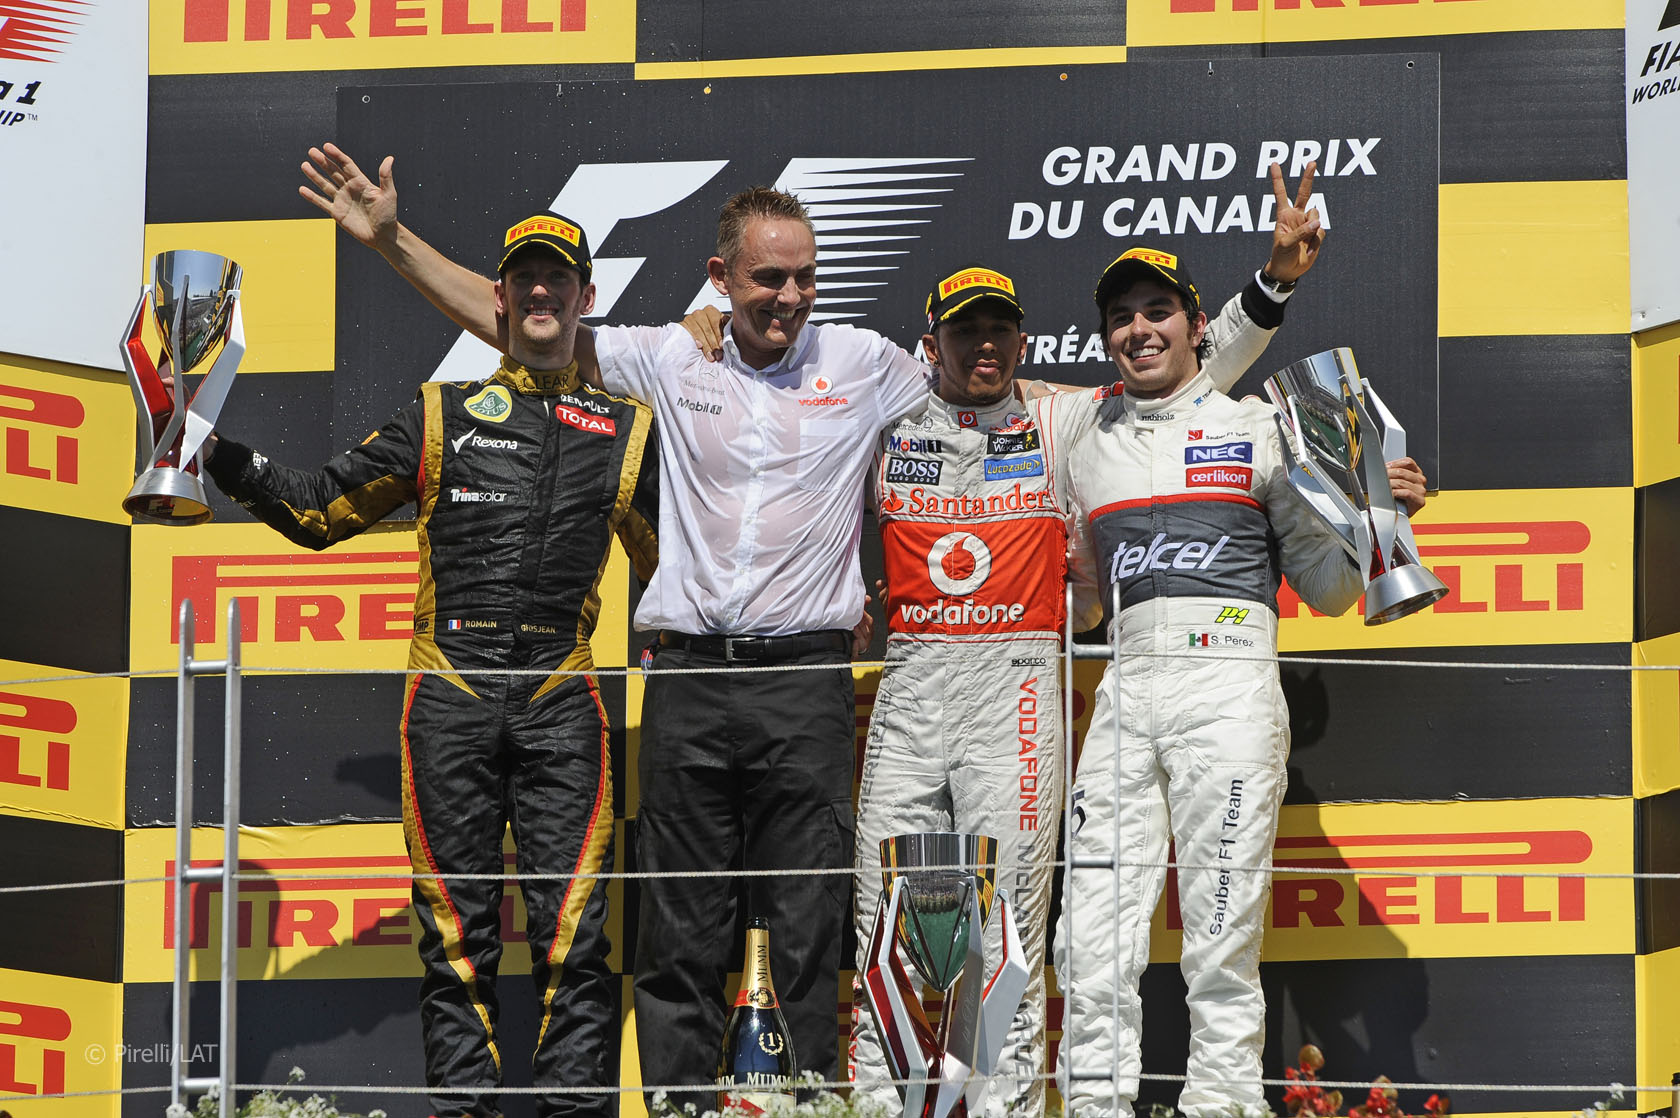 canada race review 2012 better luck next time kimi f1 race reviews. Black Bedroom Furniture Sets. Home Design Ideas